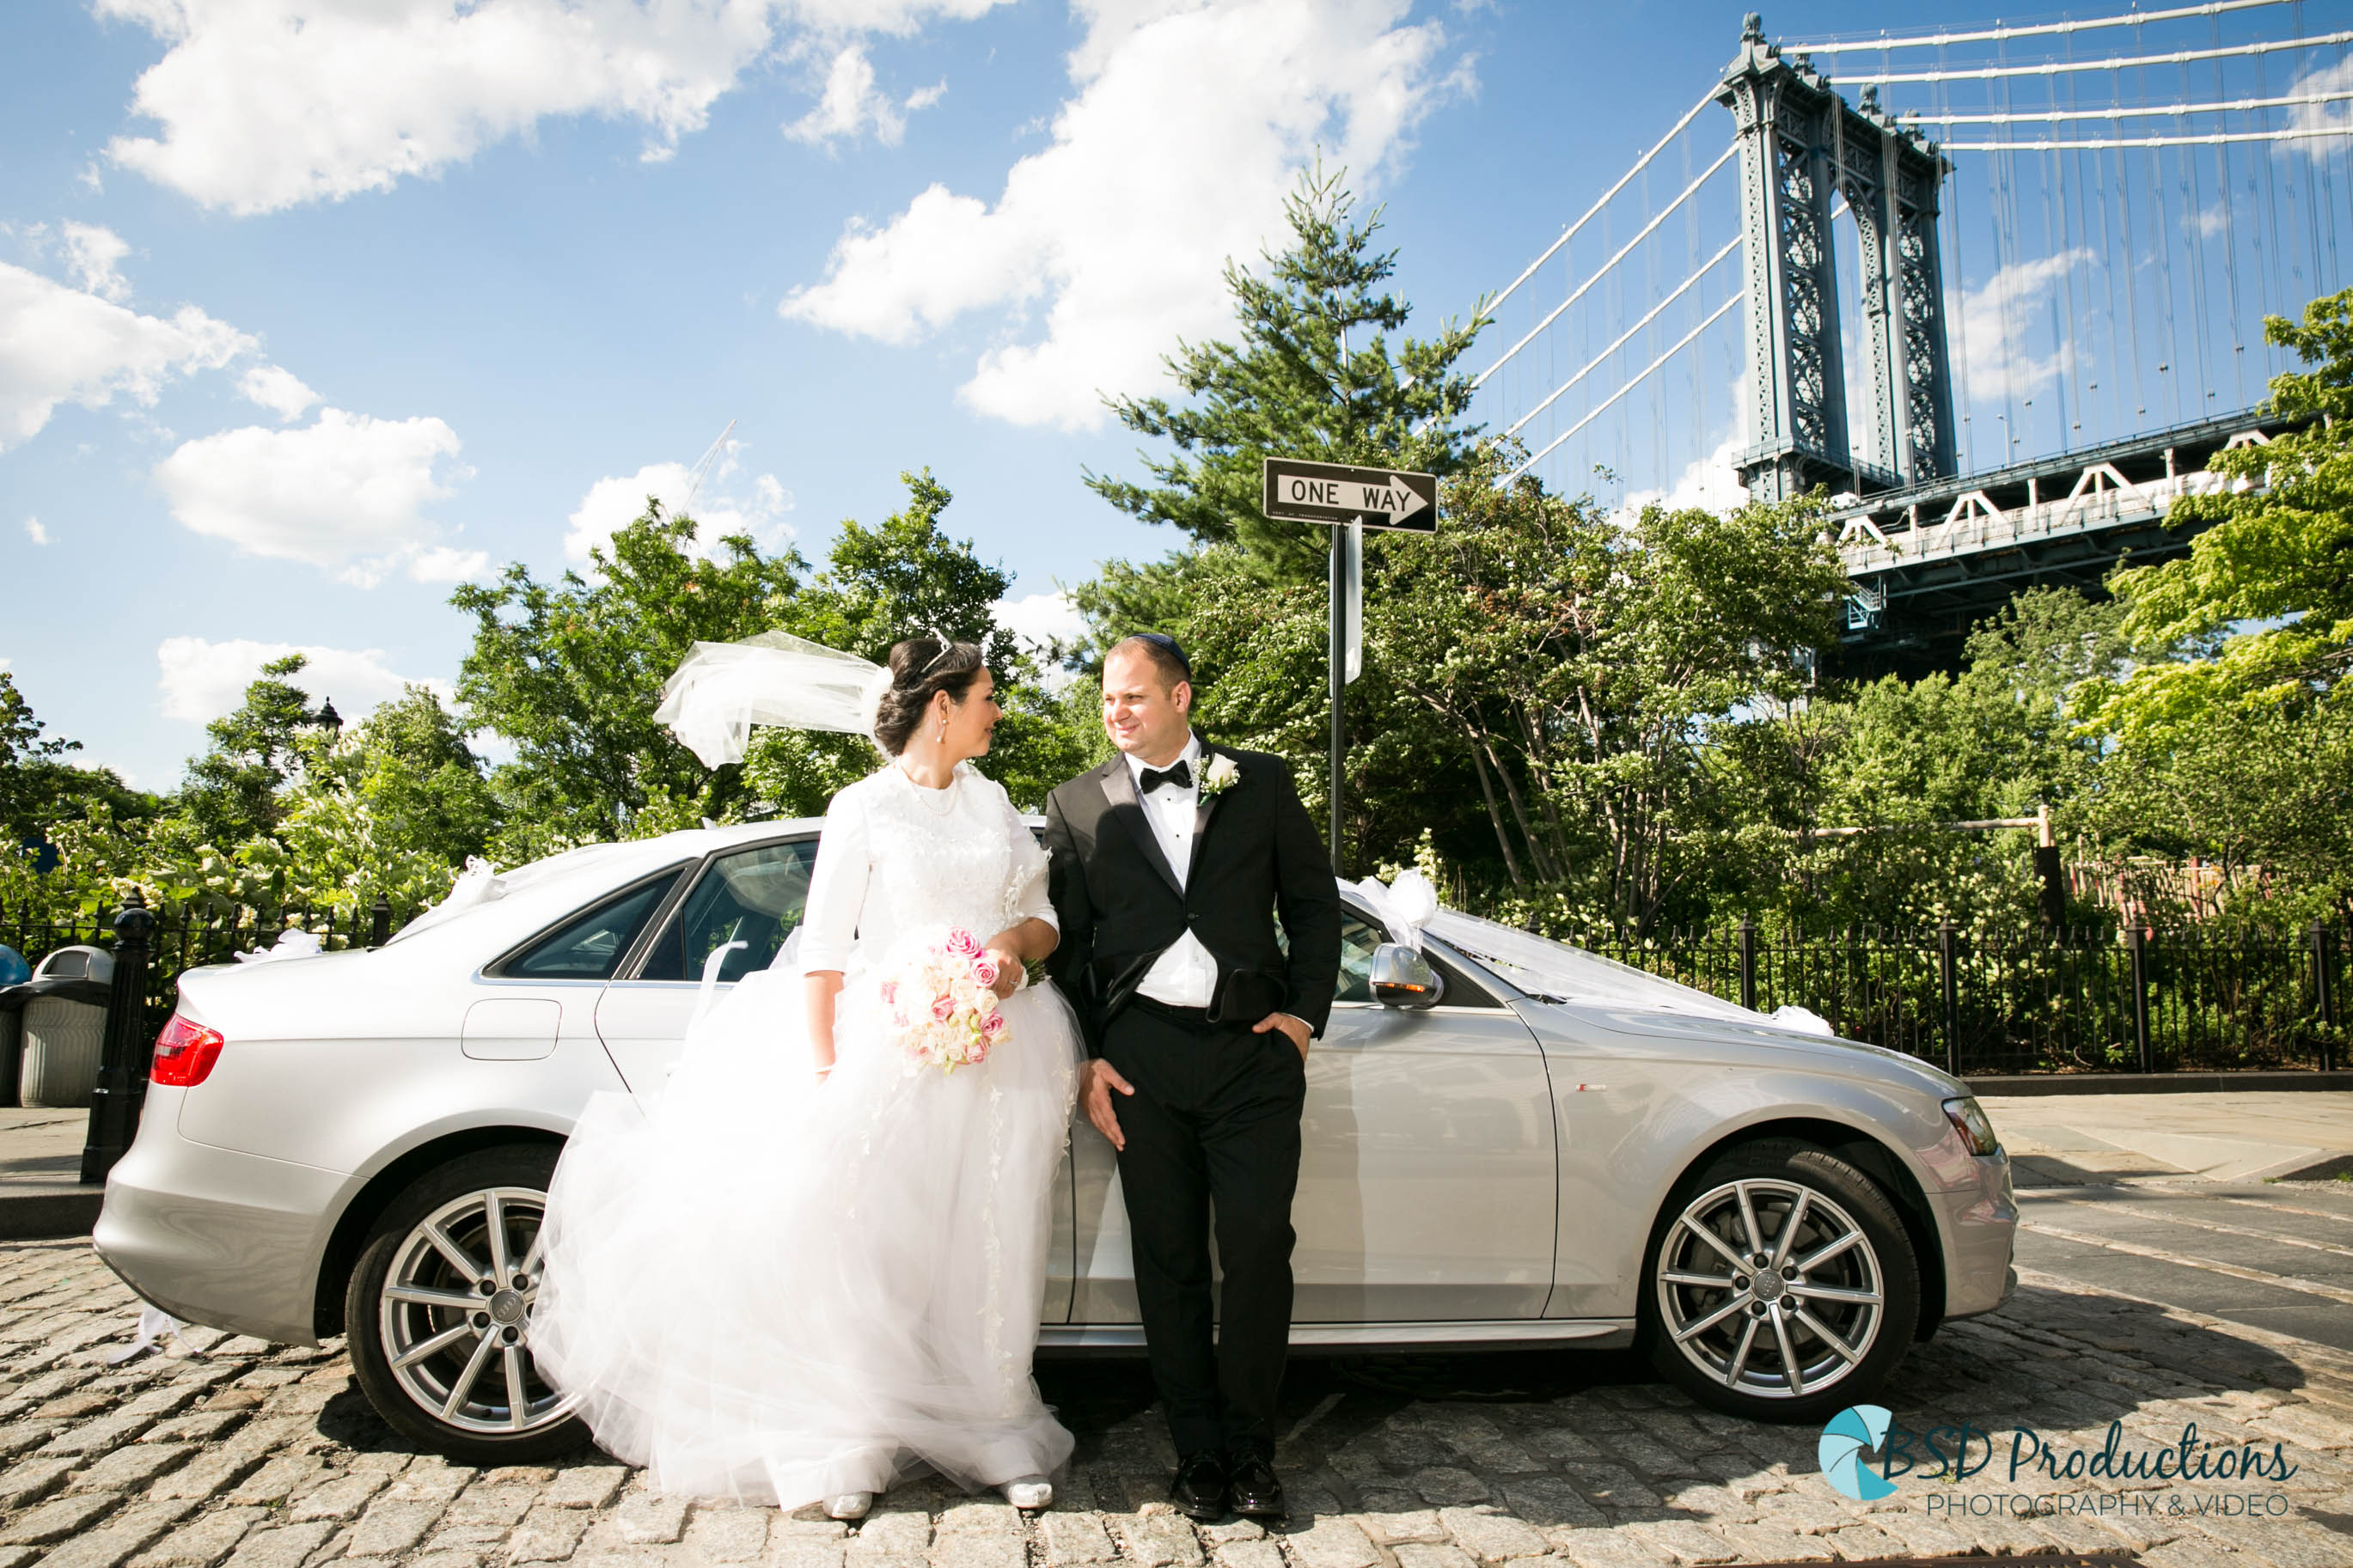 UH5A0521 Wedding – BSD Productions Photography